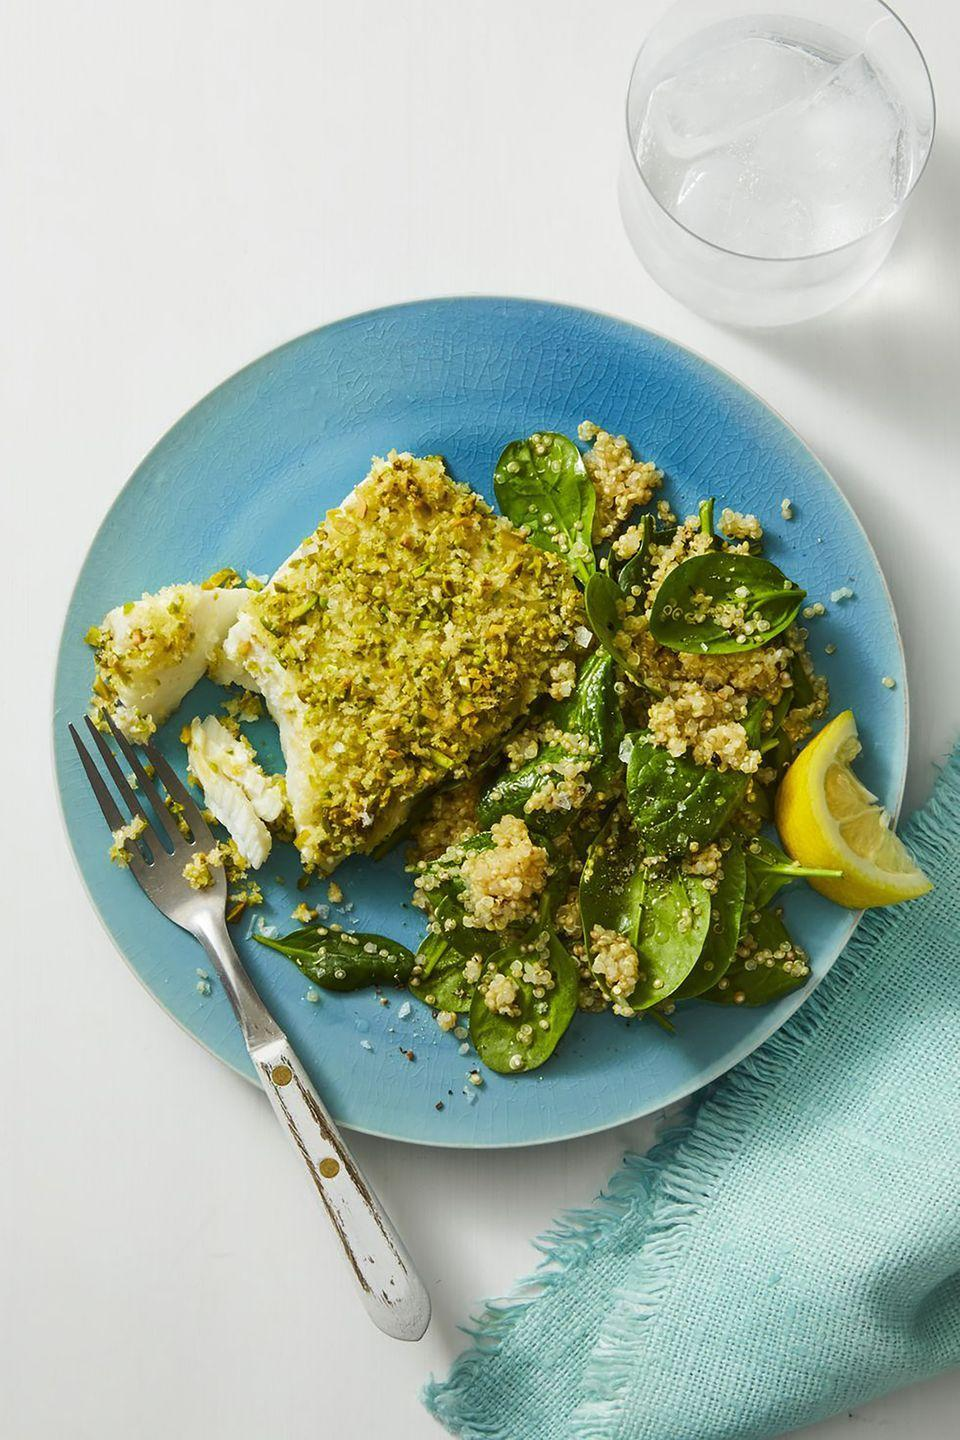 """<p>This light fish dinner — made with your favorite white fish, Greek yogurt, spinach, and pistachios — is perfect for spring. </p><p><a href=""""https://www.womansday.com/food-recipes/food-drinks/a19758207/pistachio-crusted-fish-recipe/"""" rel=""""nofollow noopener"""" target=""""_blank"""" data-ylk=""""slk:Get the recipe for Pistachio-Crusted Fish."""" class=""""link rapid-noclick-resp""""><em>Get the recipe for Pistachio-Crusted Fish.</em></a></p>"""